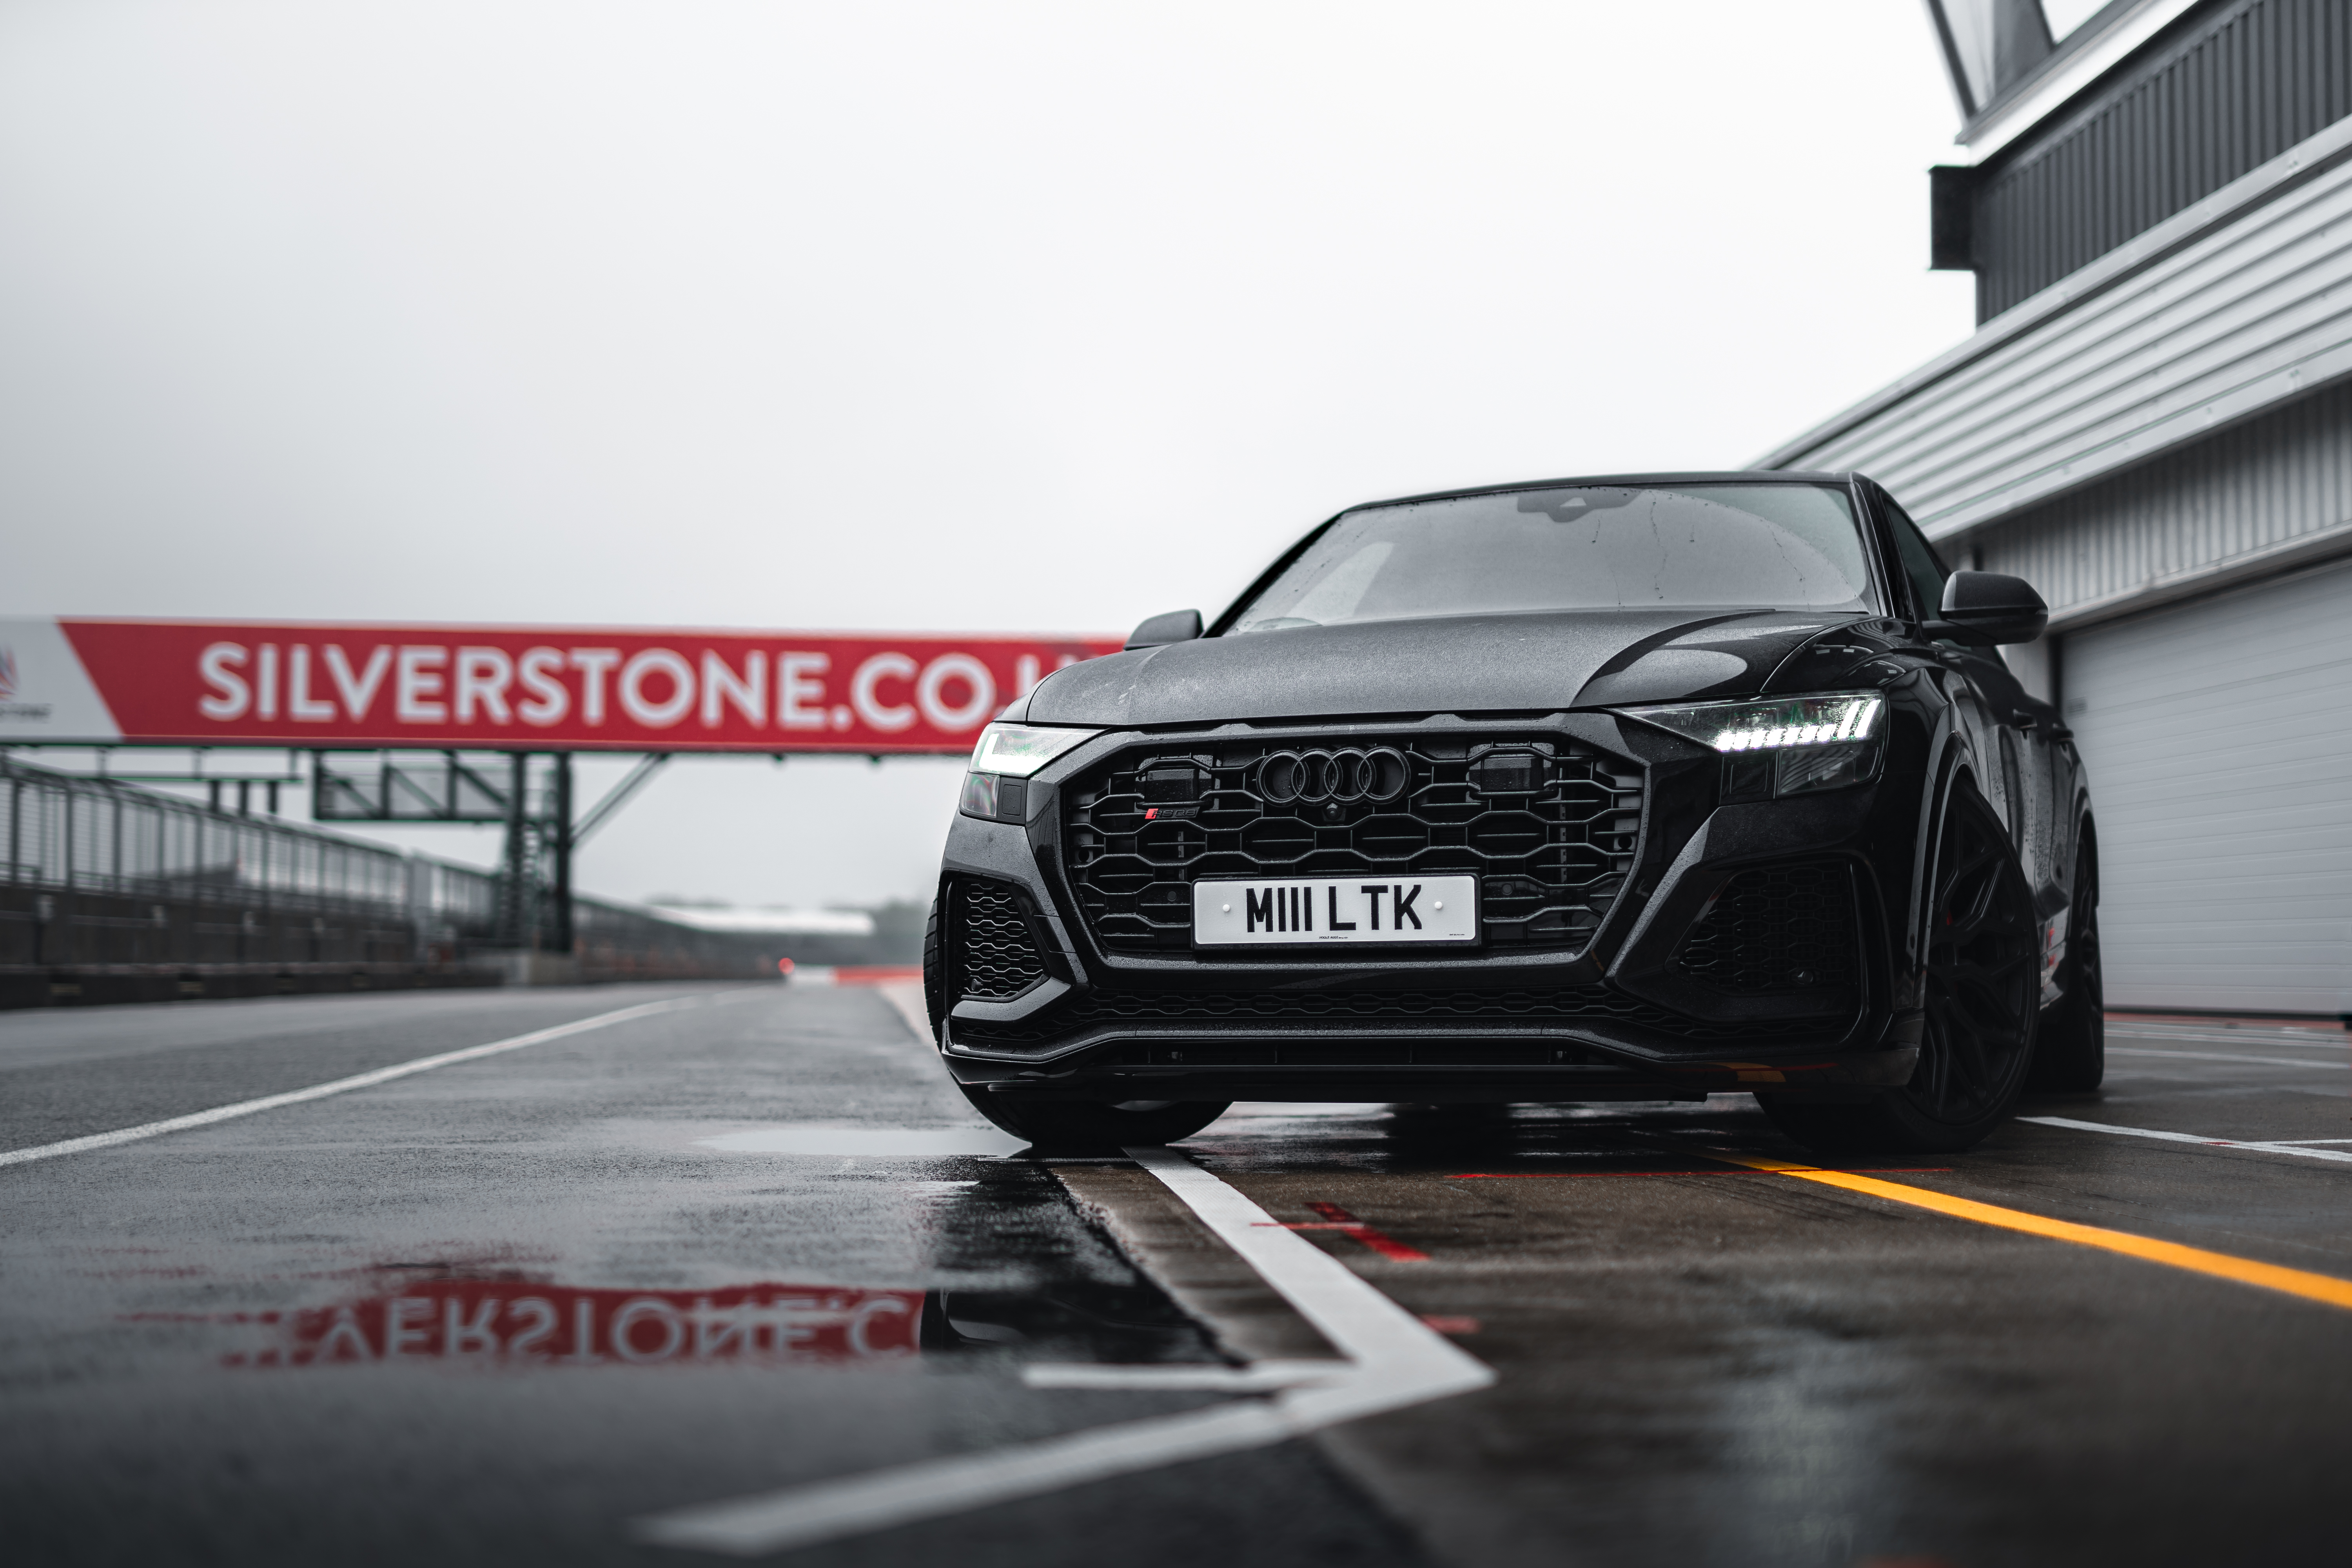 Silverstone Track Day - The Gallery